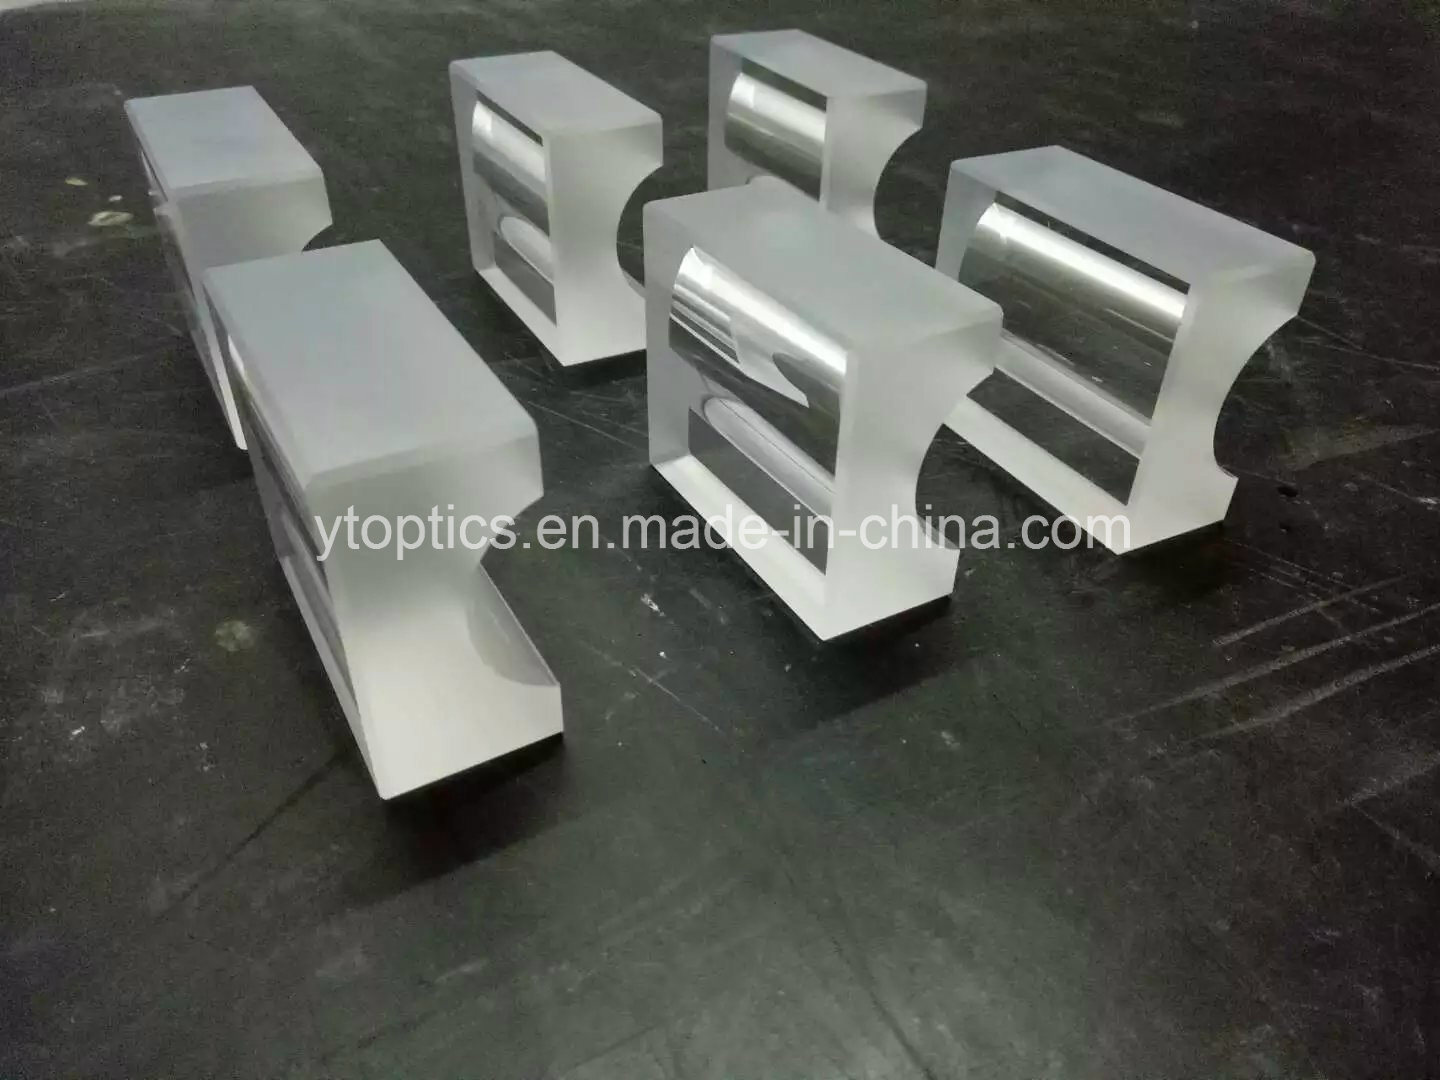 Cylindrical Lens Bk7 Lens Plano-Concave Cylindrical Lens